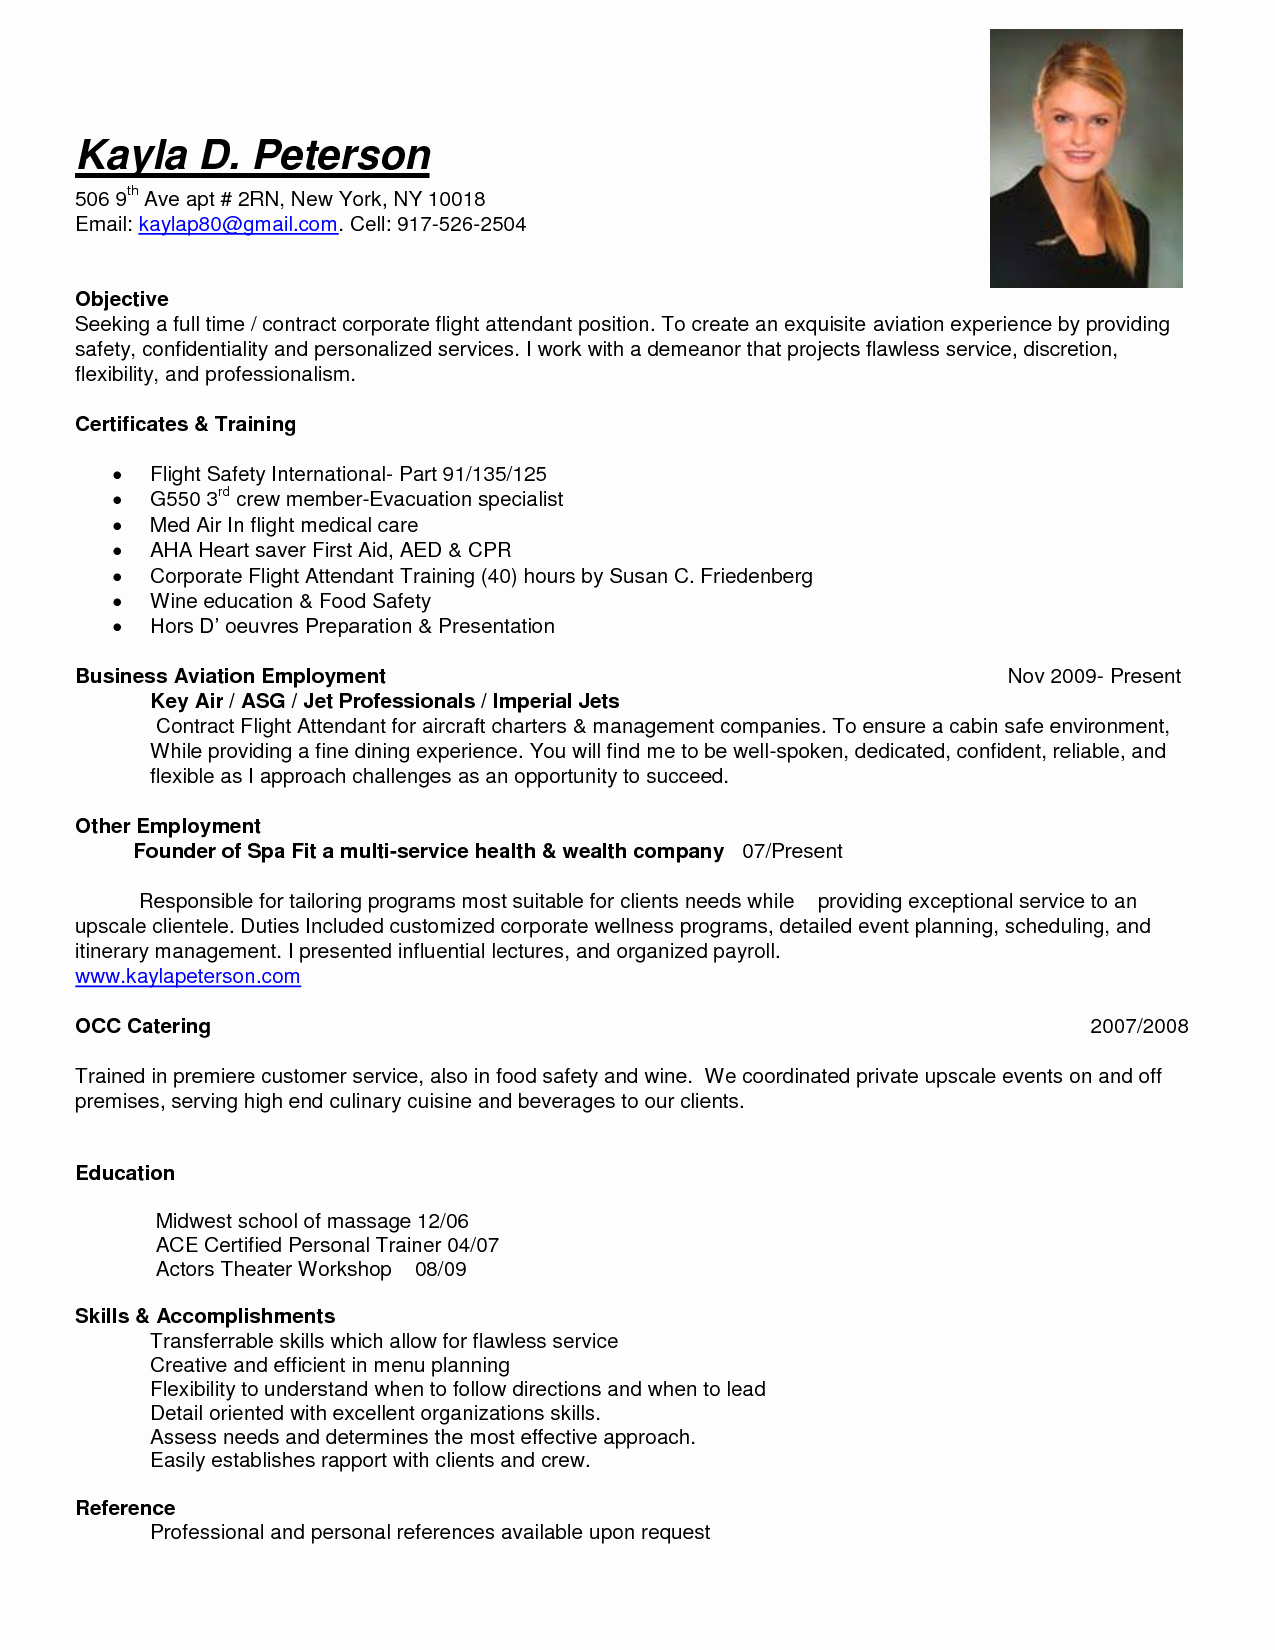 Sample Objective Full Time Corporate Flight attendant Job